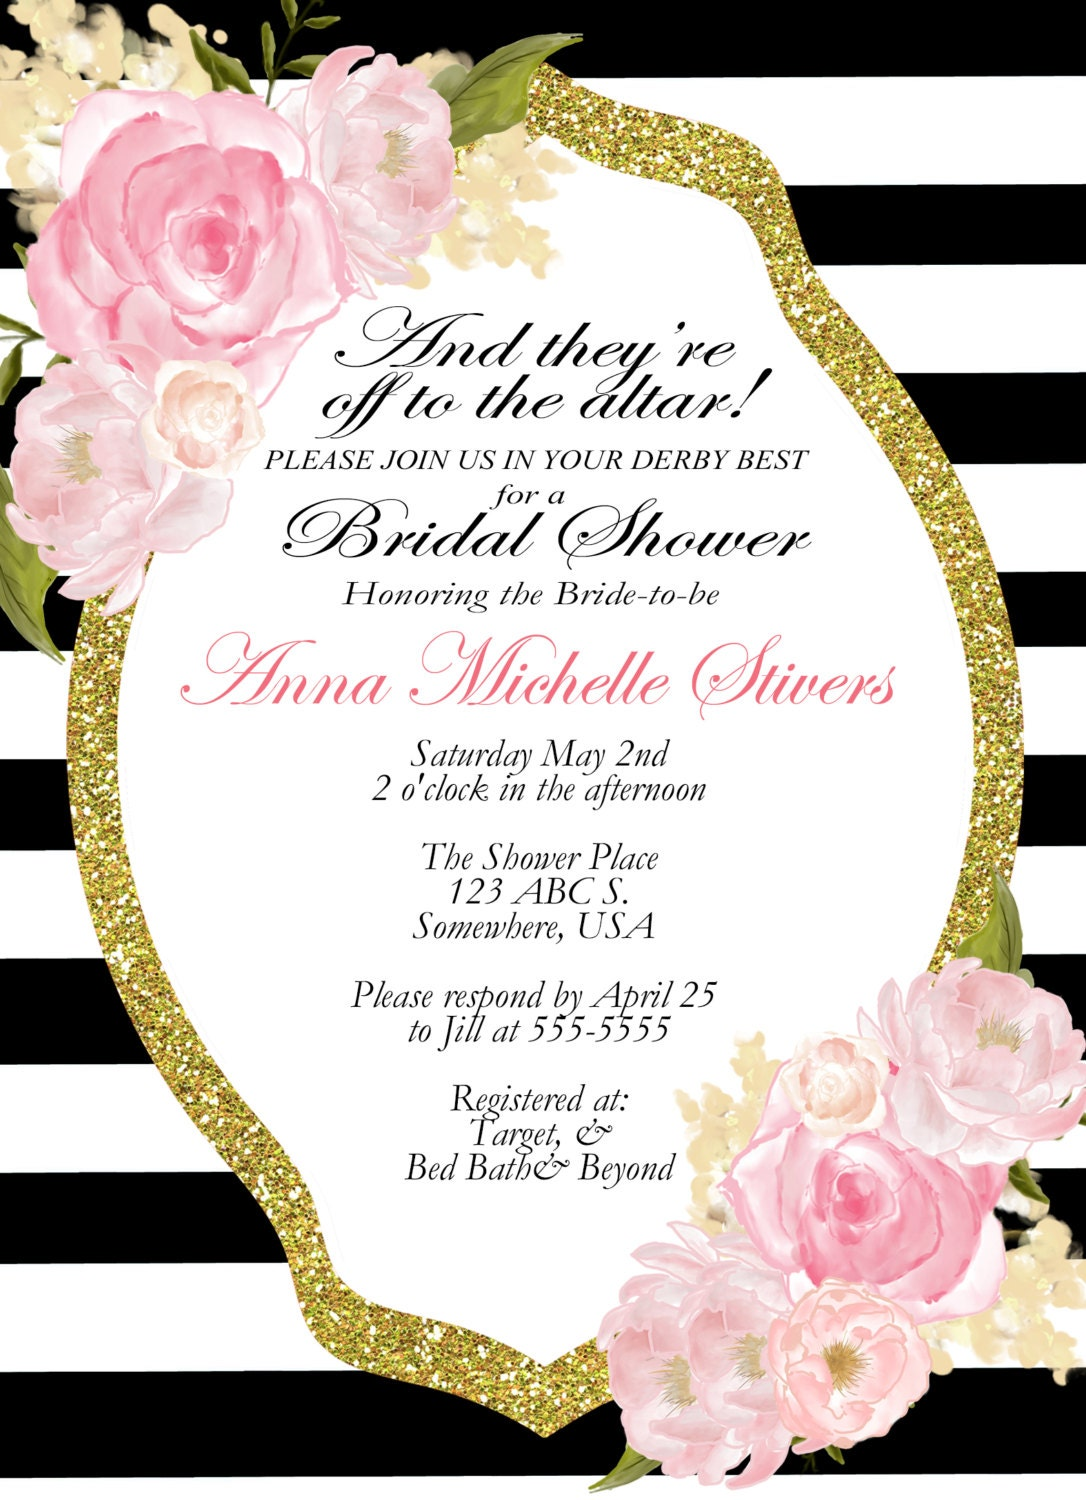 kentucky derby theme shower invitation classic tea party shower tea party luncheon bridal shower invitation 002